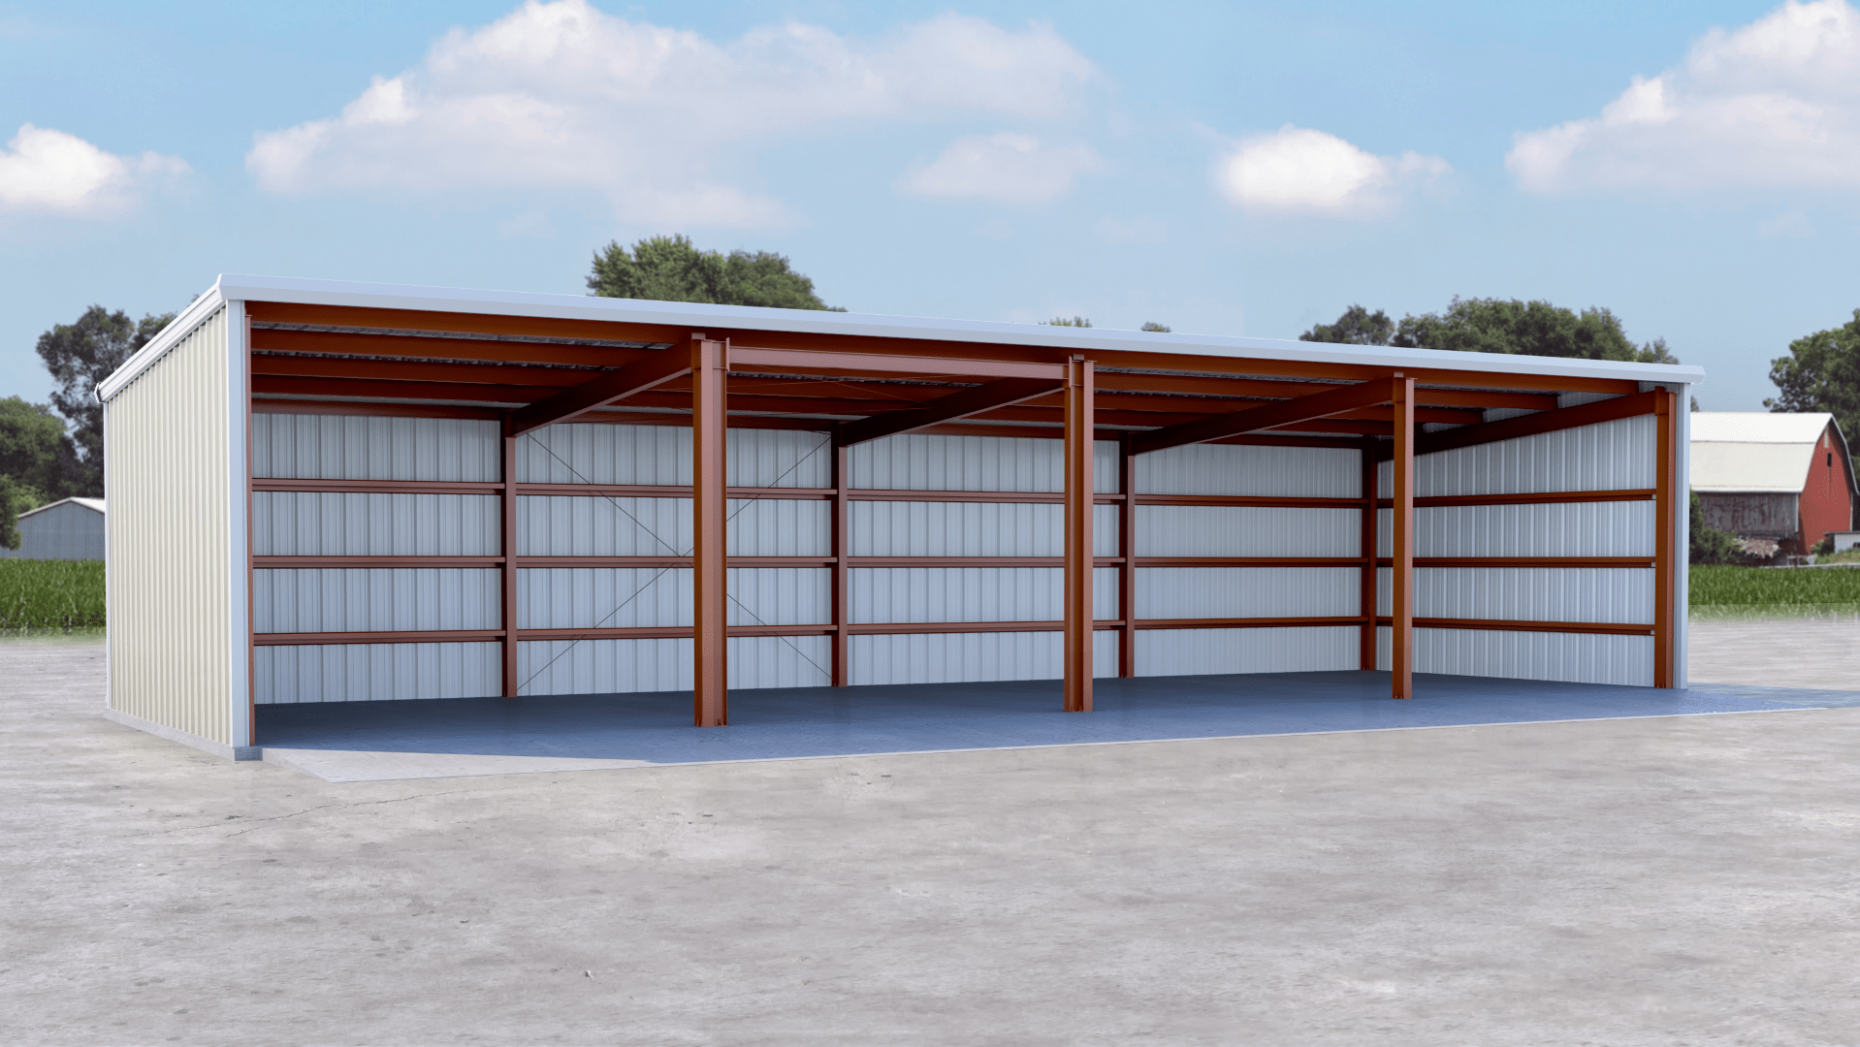 Discount Metal Buildings Steel Buildings On Sale Metal Cheap Carports Built.png